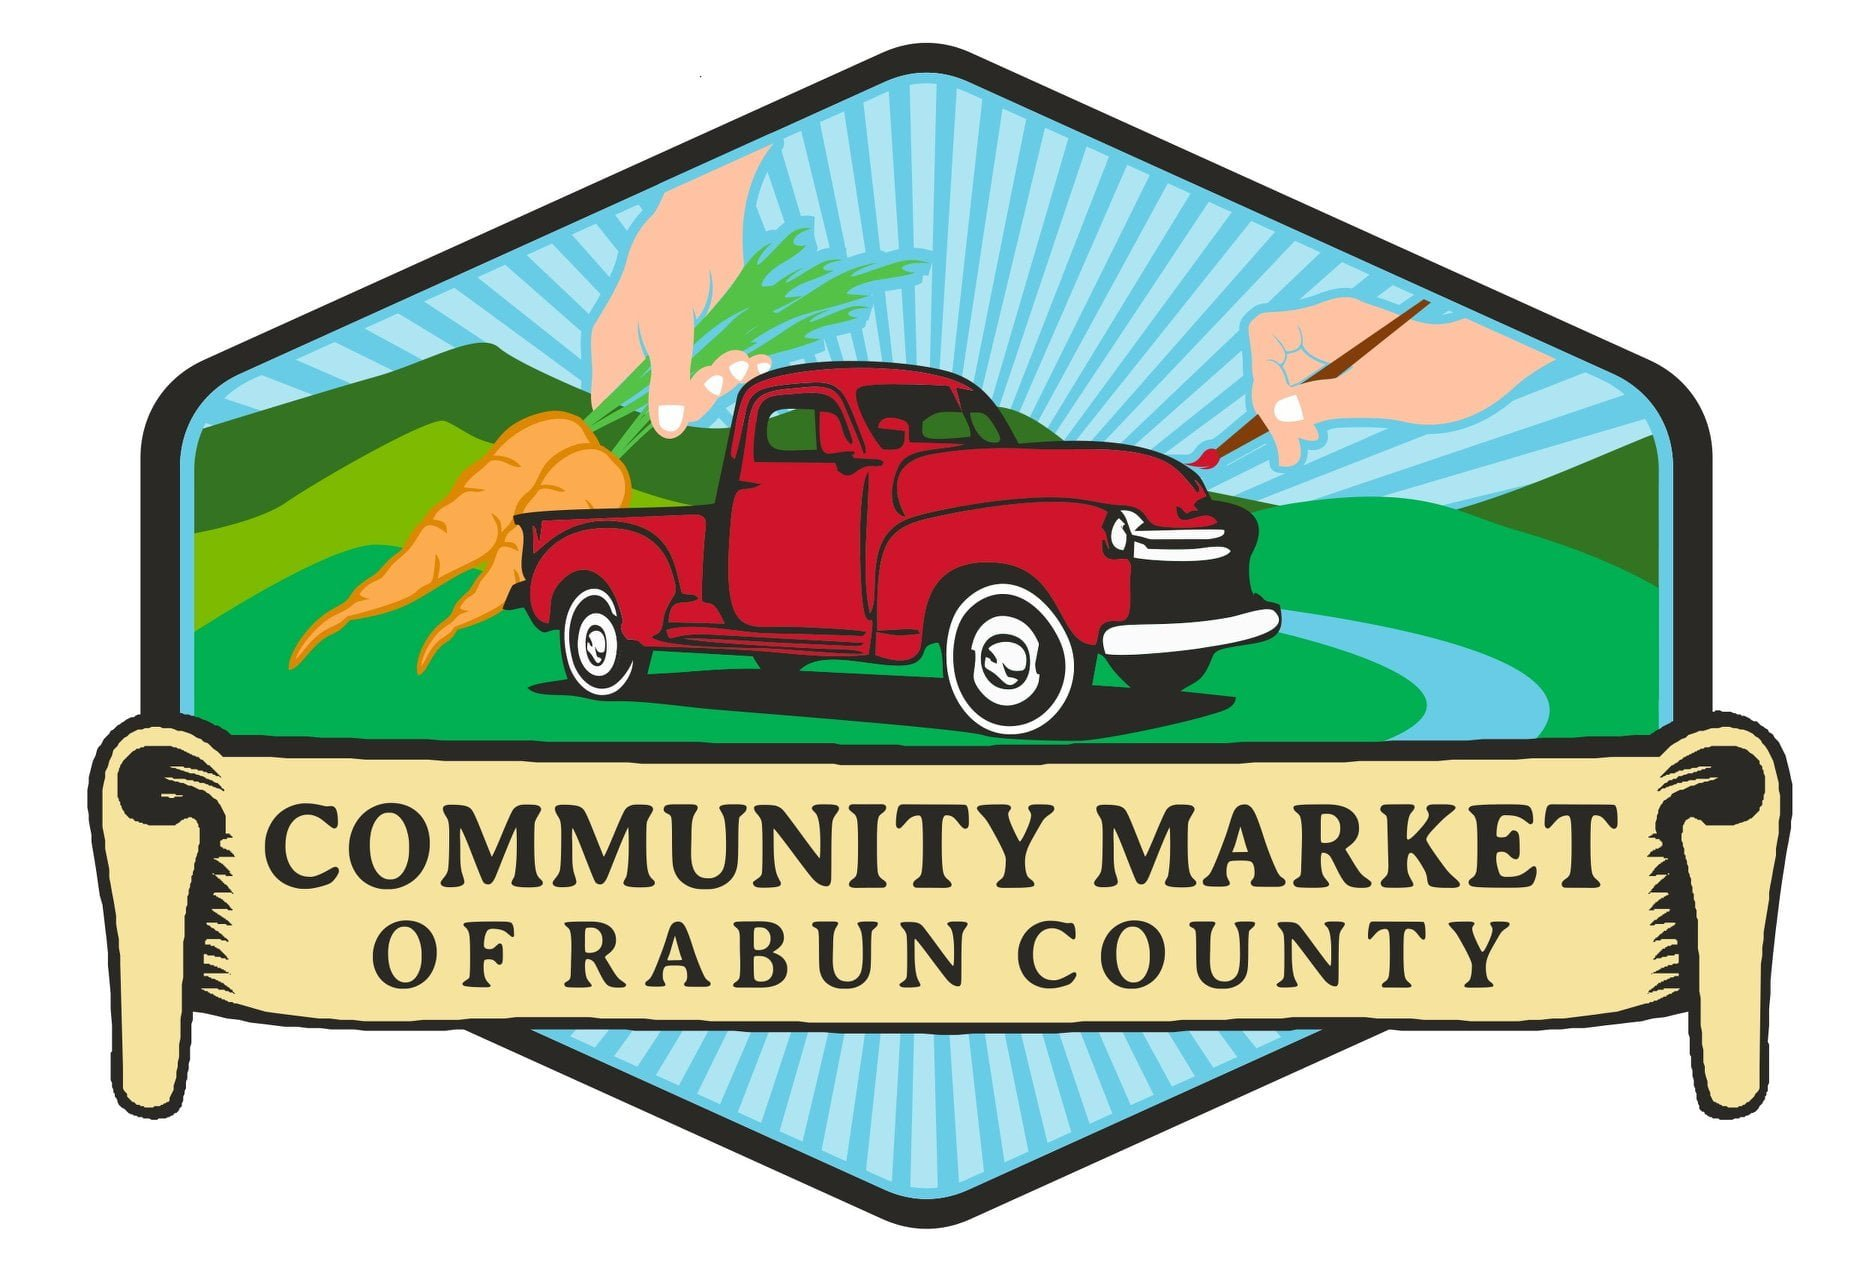 Community Market of Rabun County